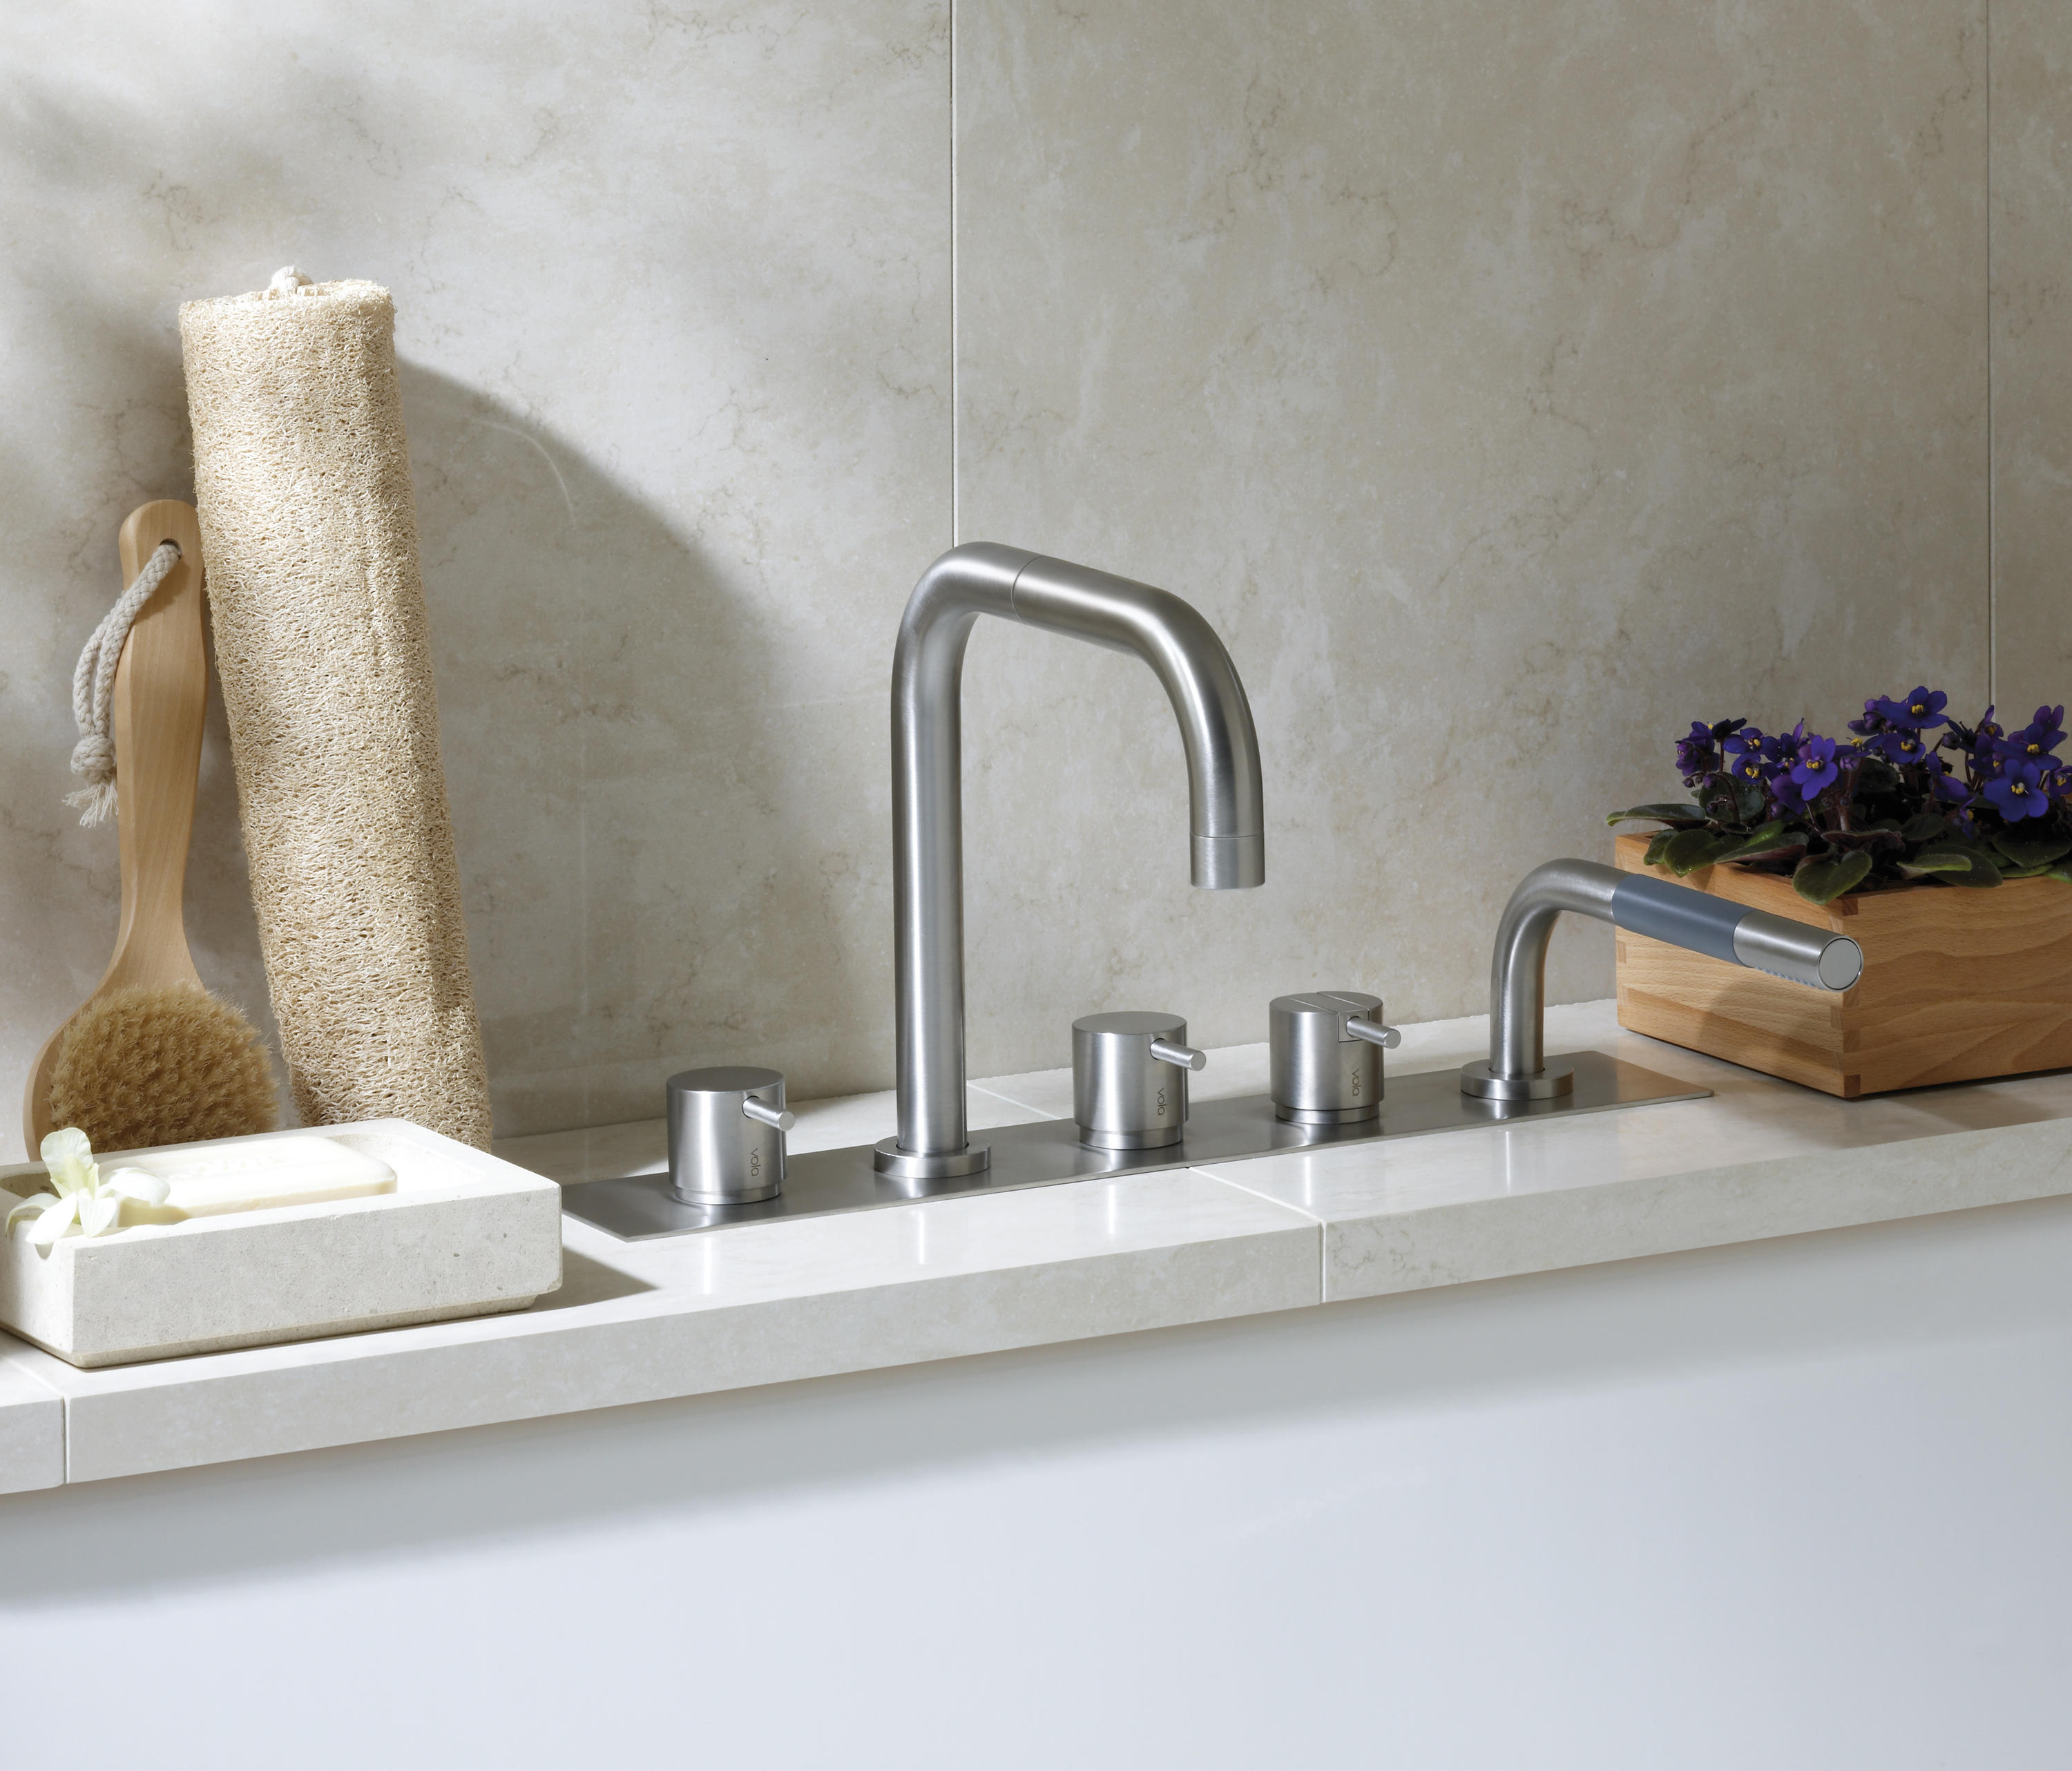 Vola Trendy Vola C ehandle Mixer With Vola Collection First